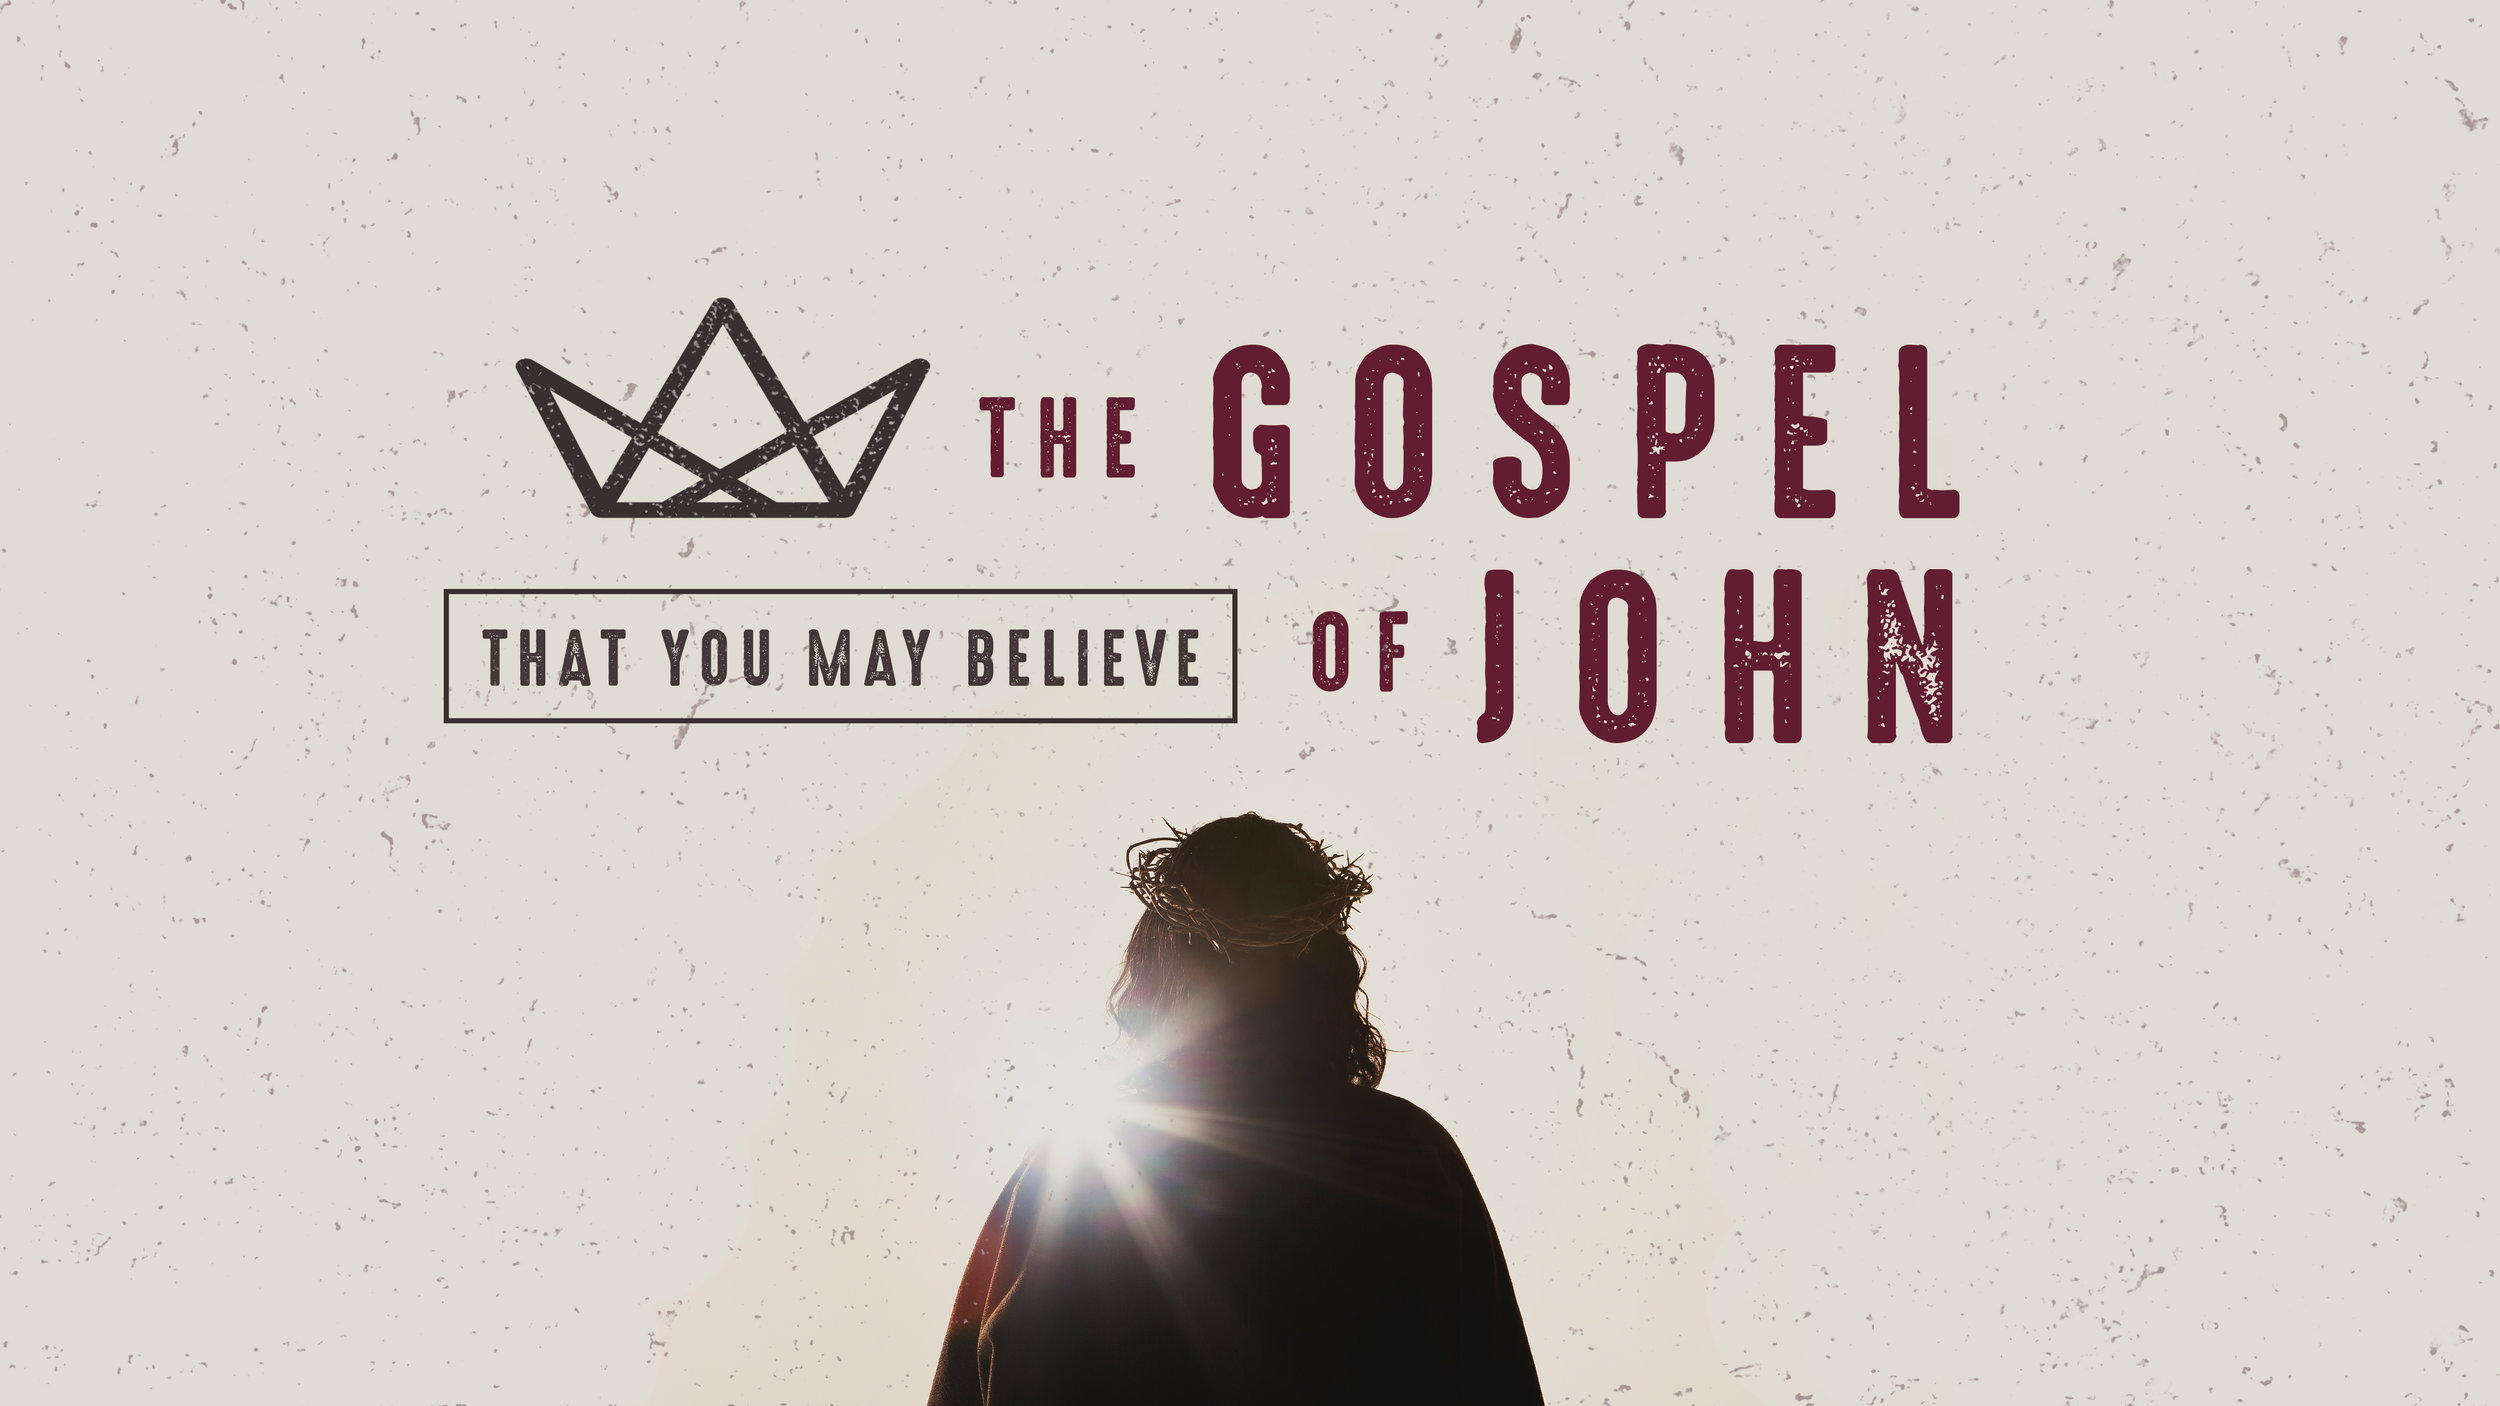 The complete Sermon Series for John can be found here.